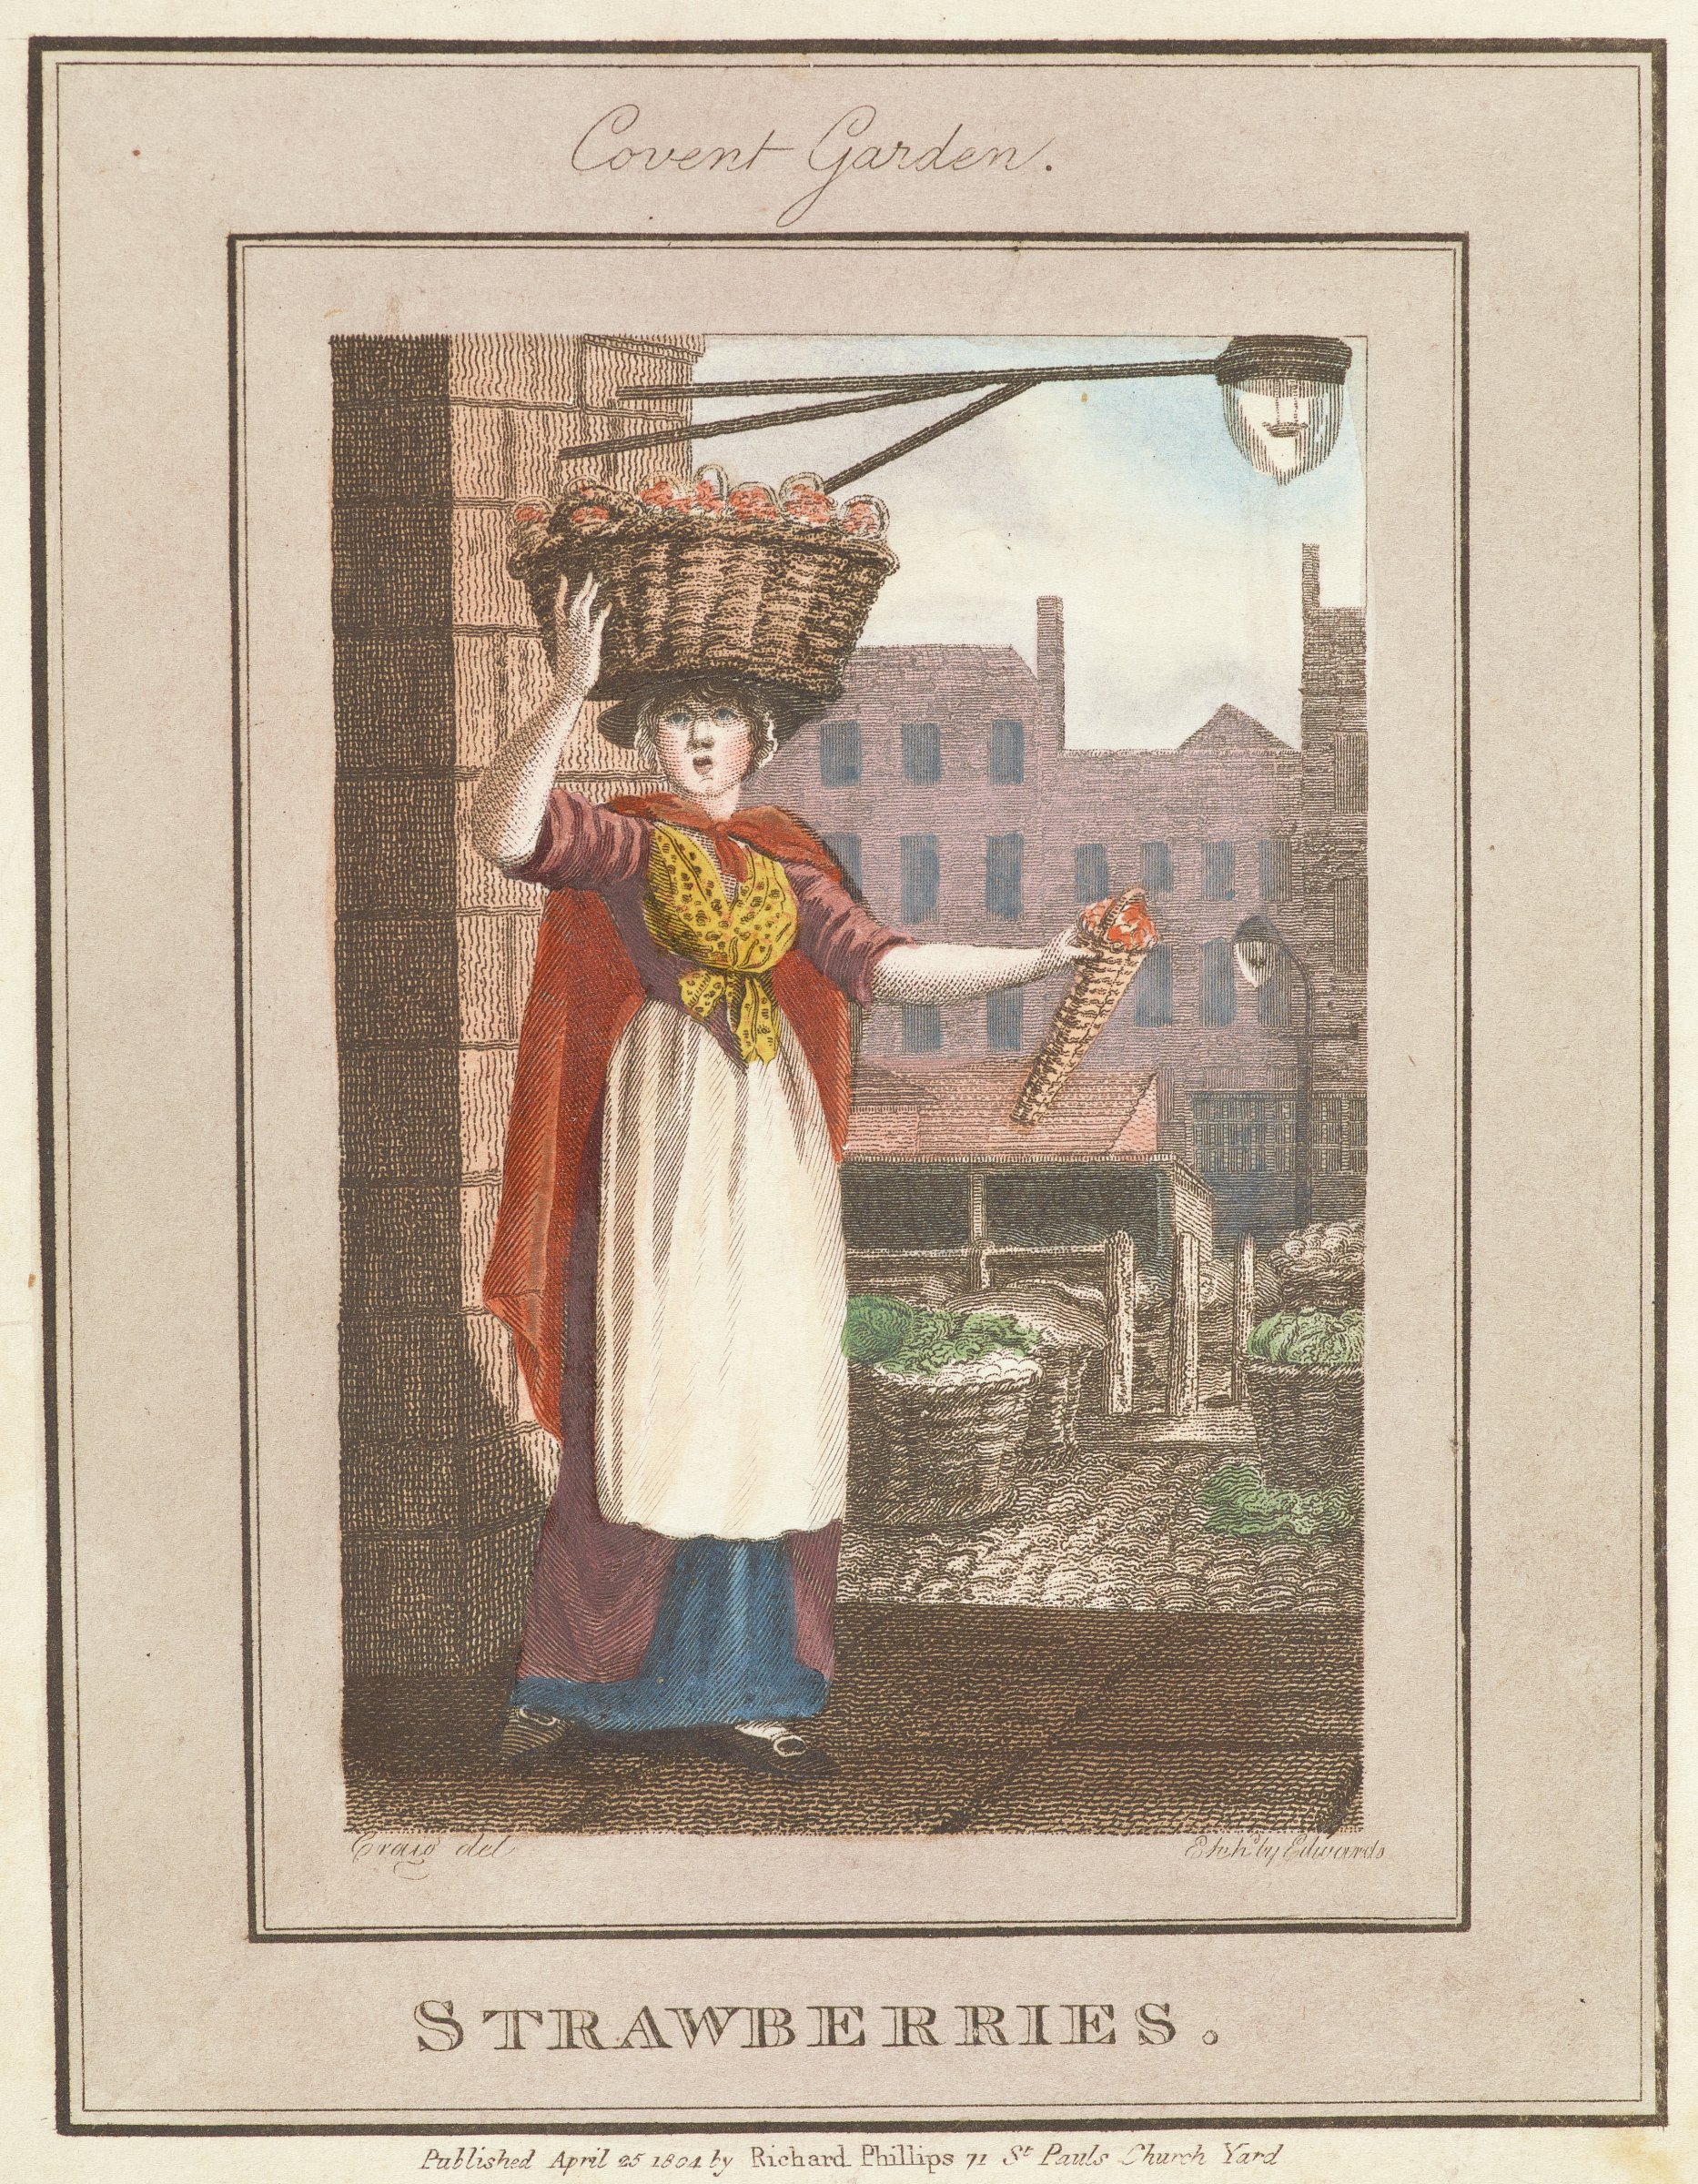 A woman stands near a brick column balancing a basket full of strawberries on her head. She holds a small, narrow basket of strawberries in her left hand. In the background are baskets of vegetables. Beyond the baskets is a city scape.